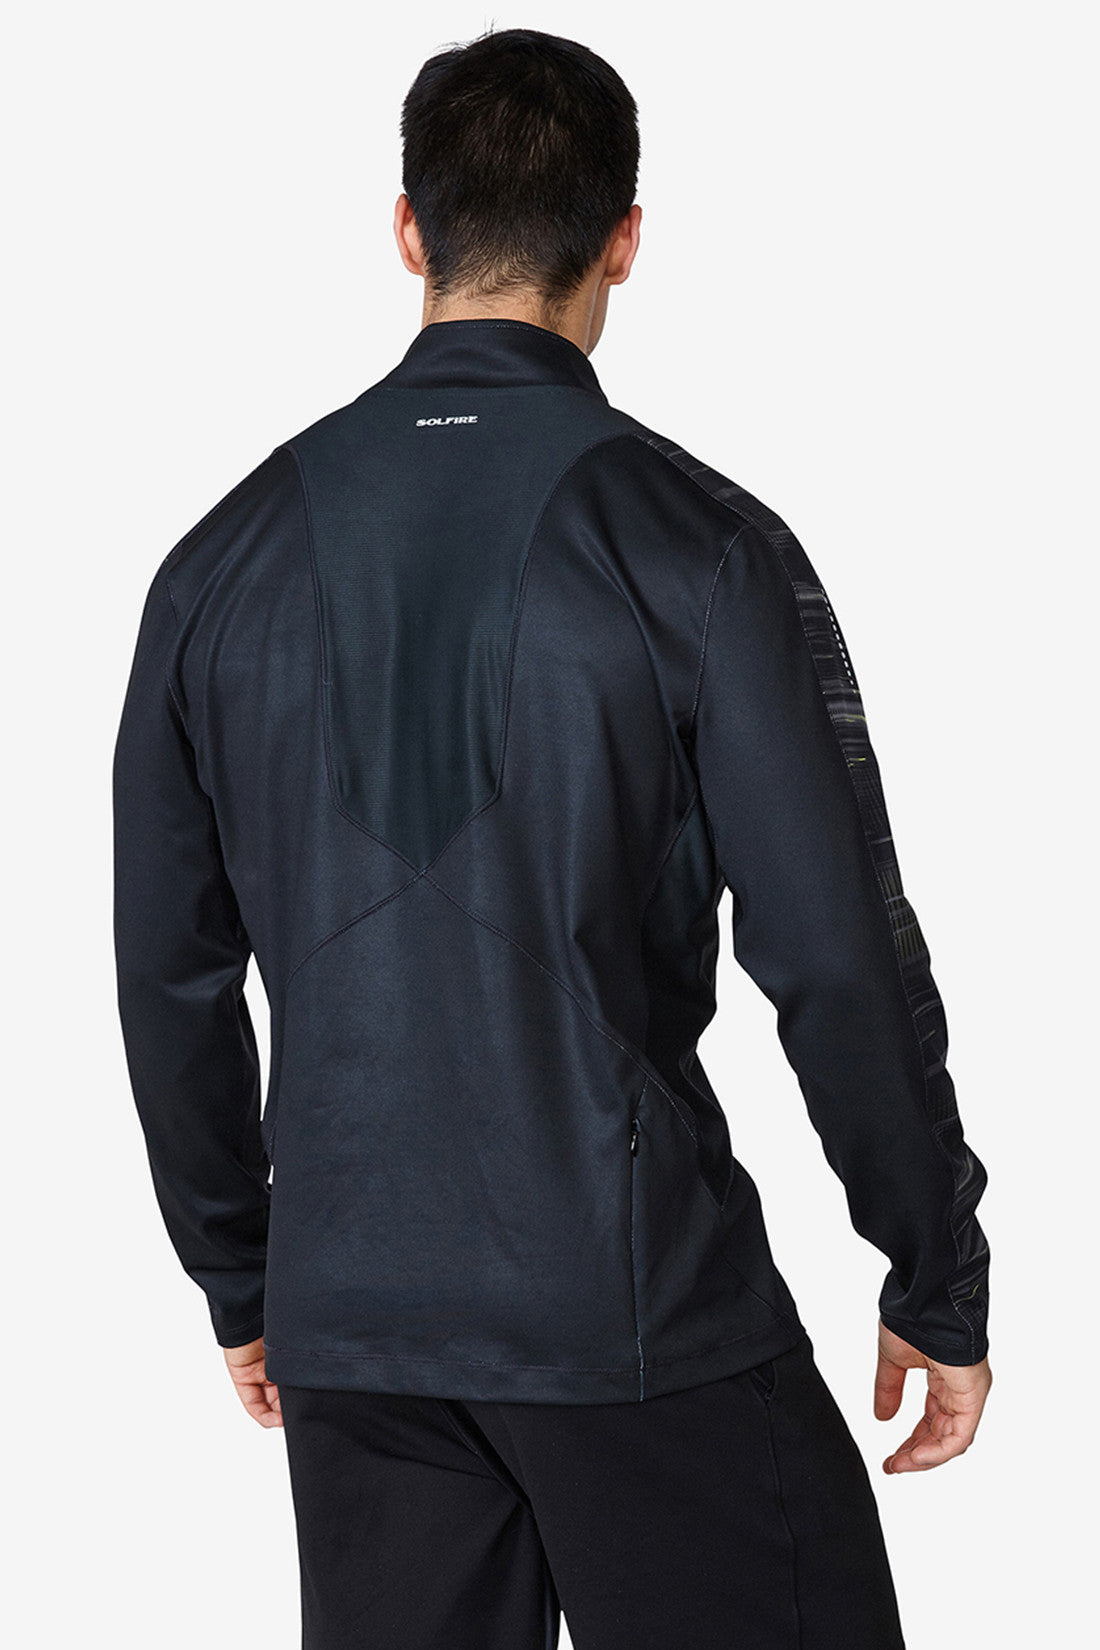 Accelerate 1/4 zip - Anthracite